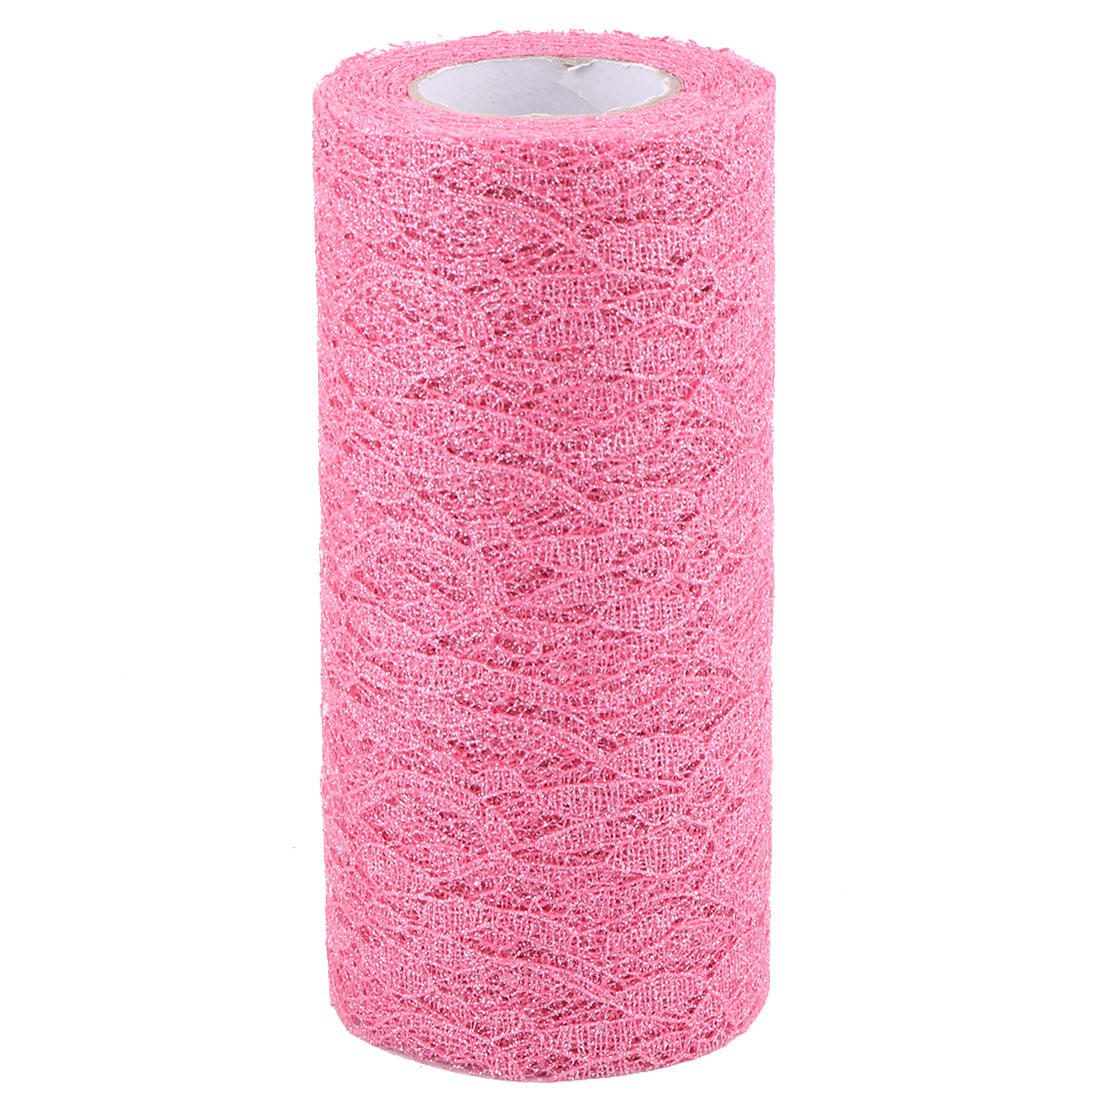 Home Party Polyester Decoration Tulle Spool Roll Hot Pink 6 Inch x 10 Yards